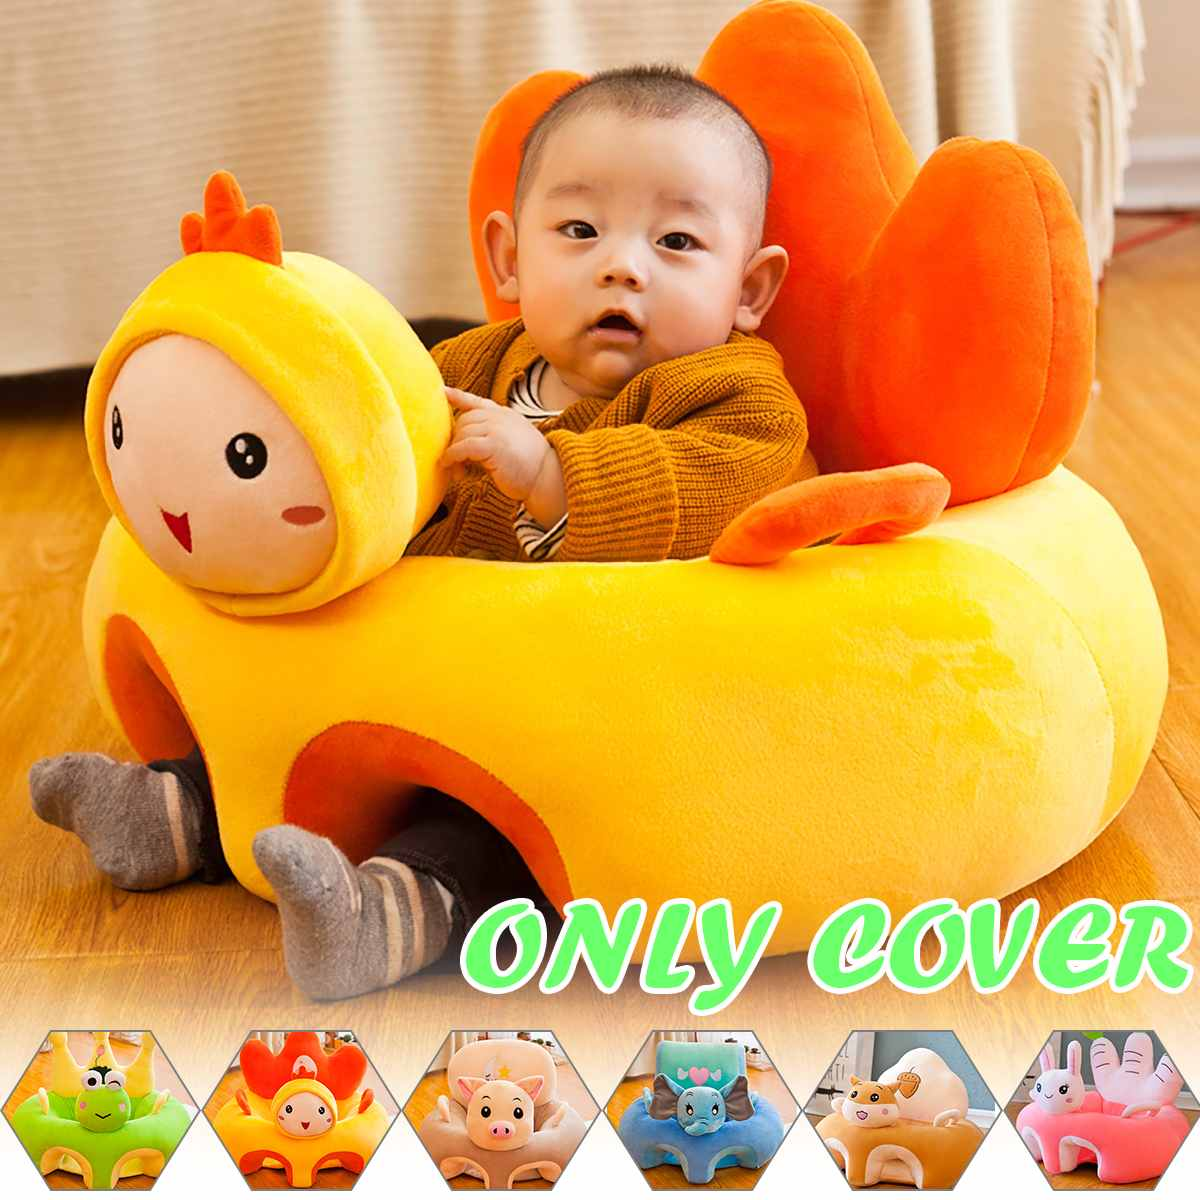 Cute Cartoon Baby Sofa Support Seat Cover Without Filler Plush Chair Comfortable Toddler Nest Puff Washable Cradle Sofa Chair